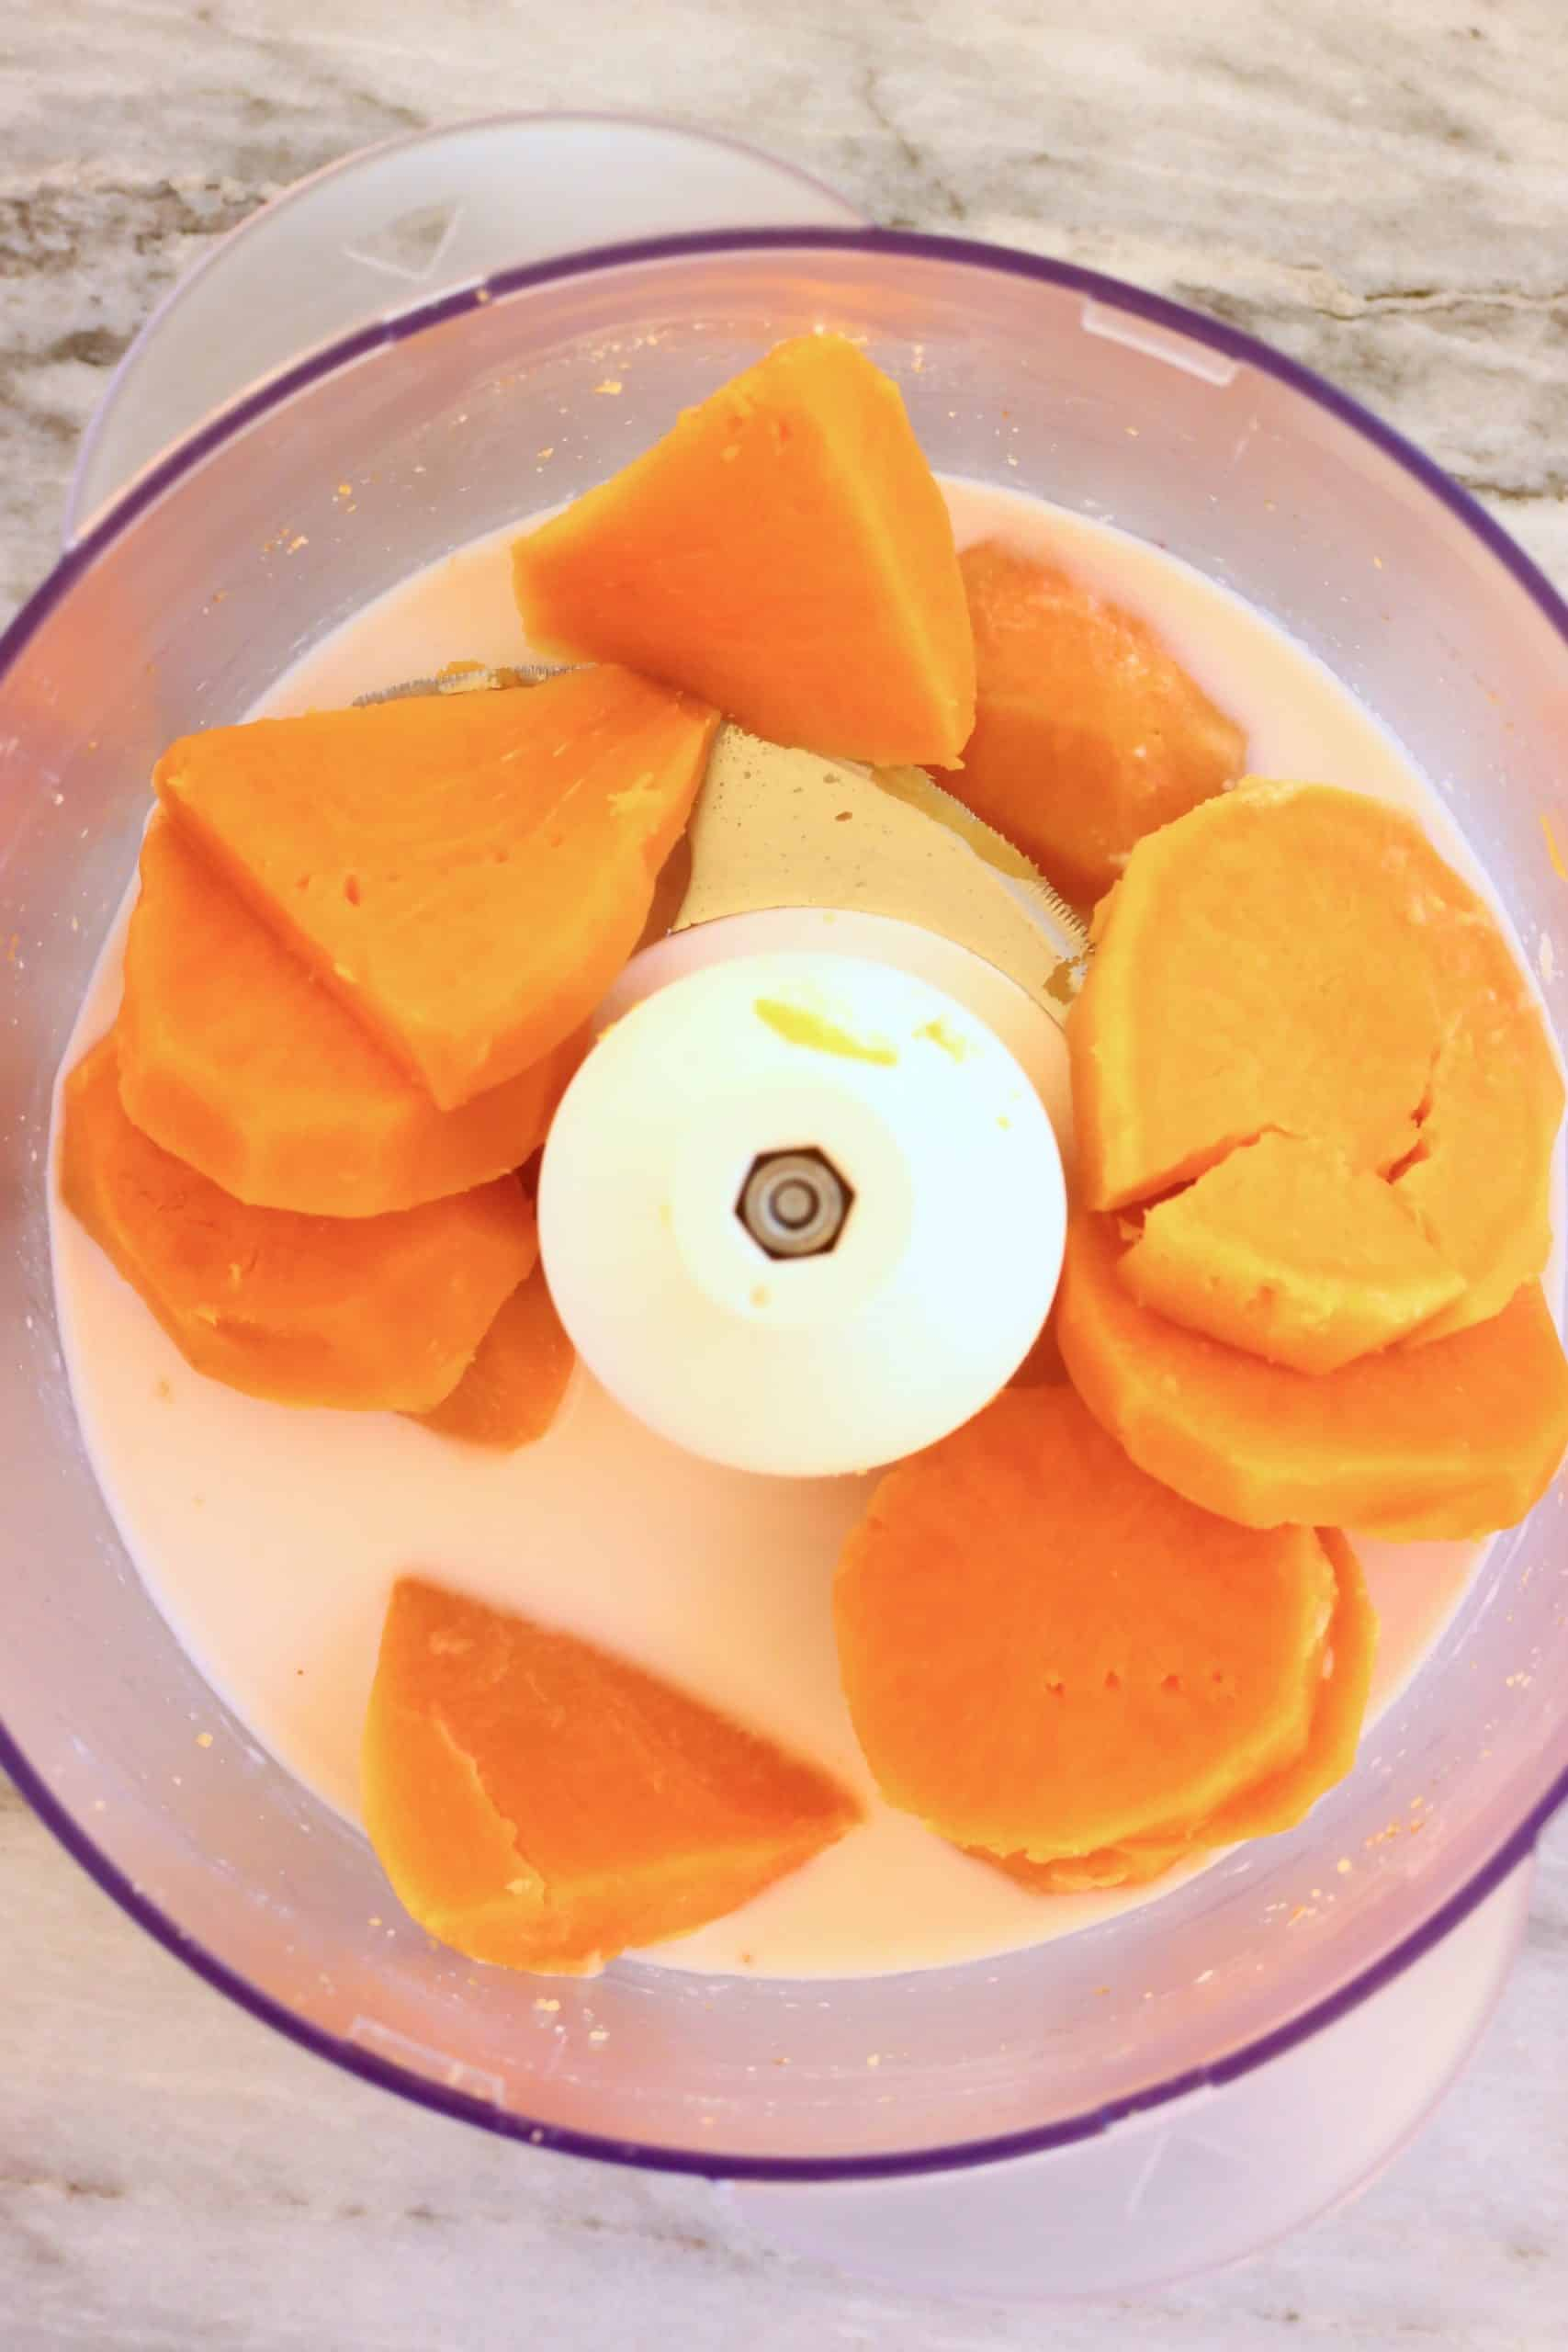 Cooked sweet potato and almond milk in a food processor